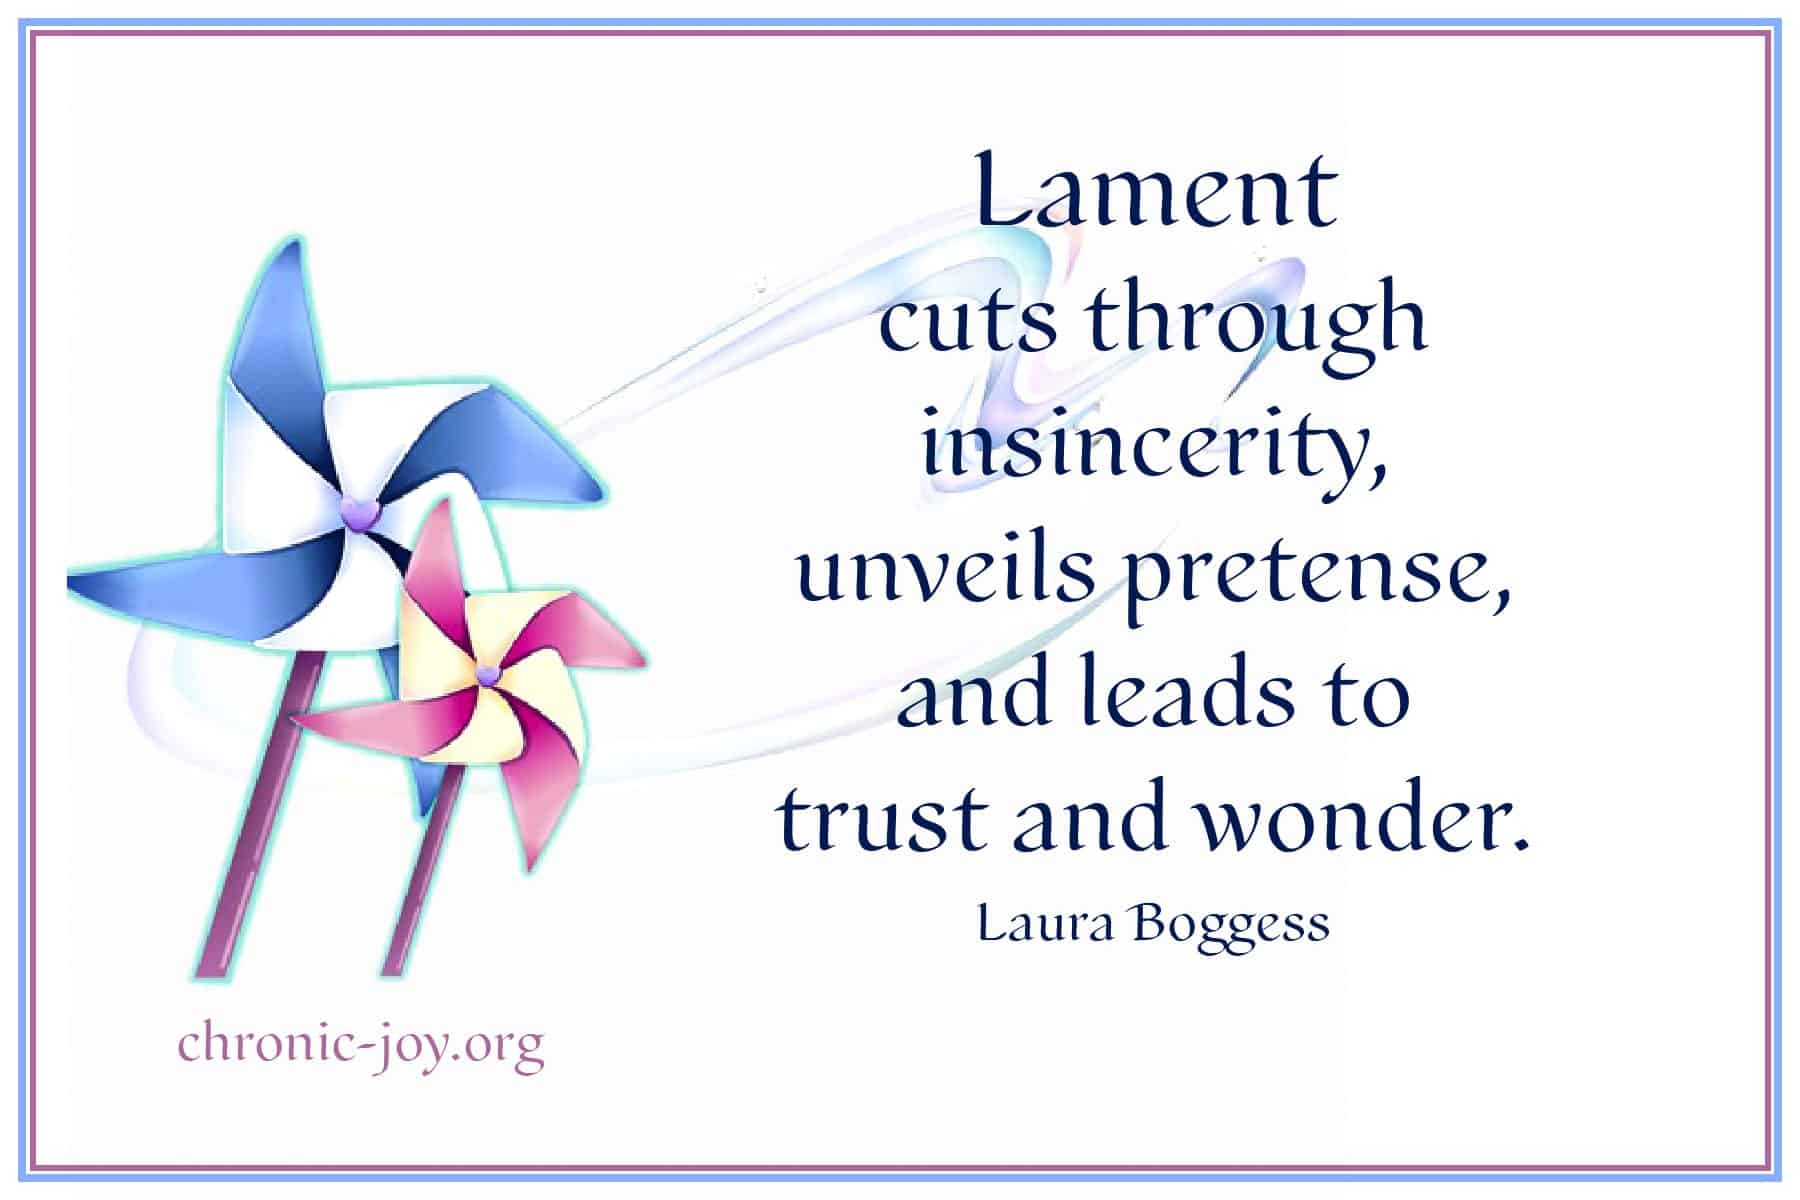 Lament leads to trust and wonder.